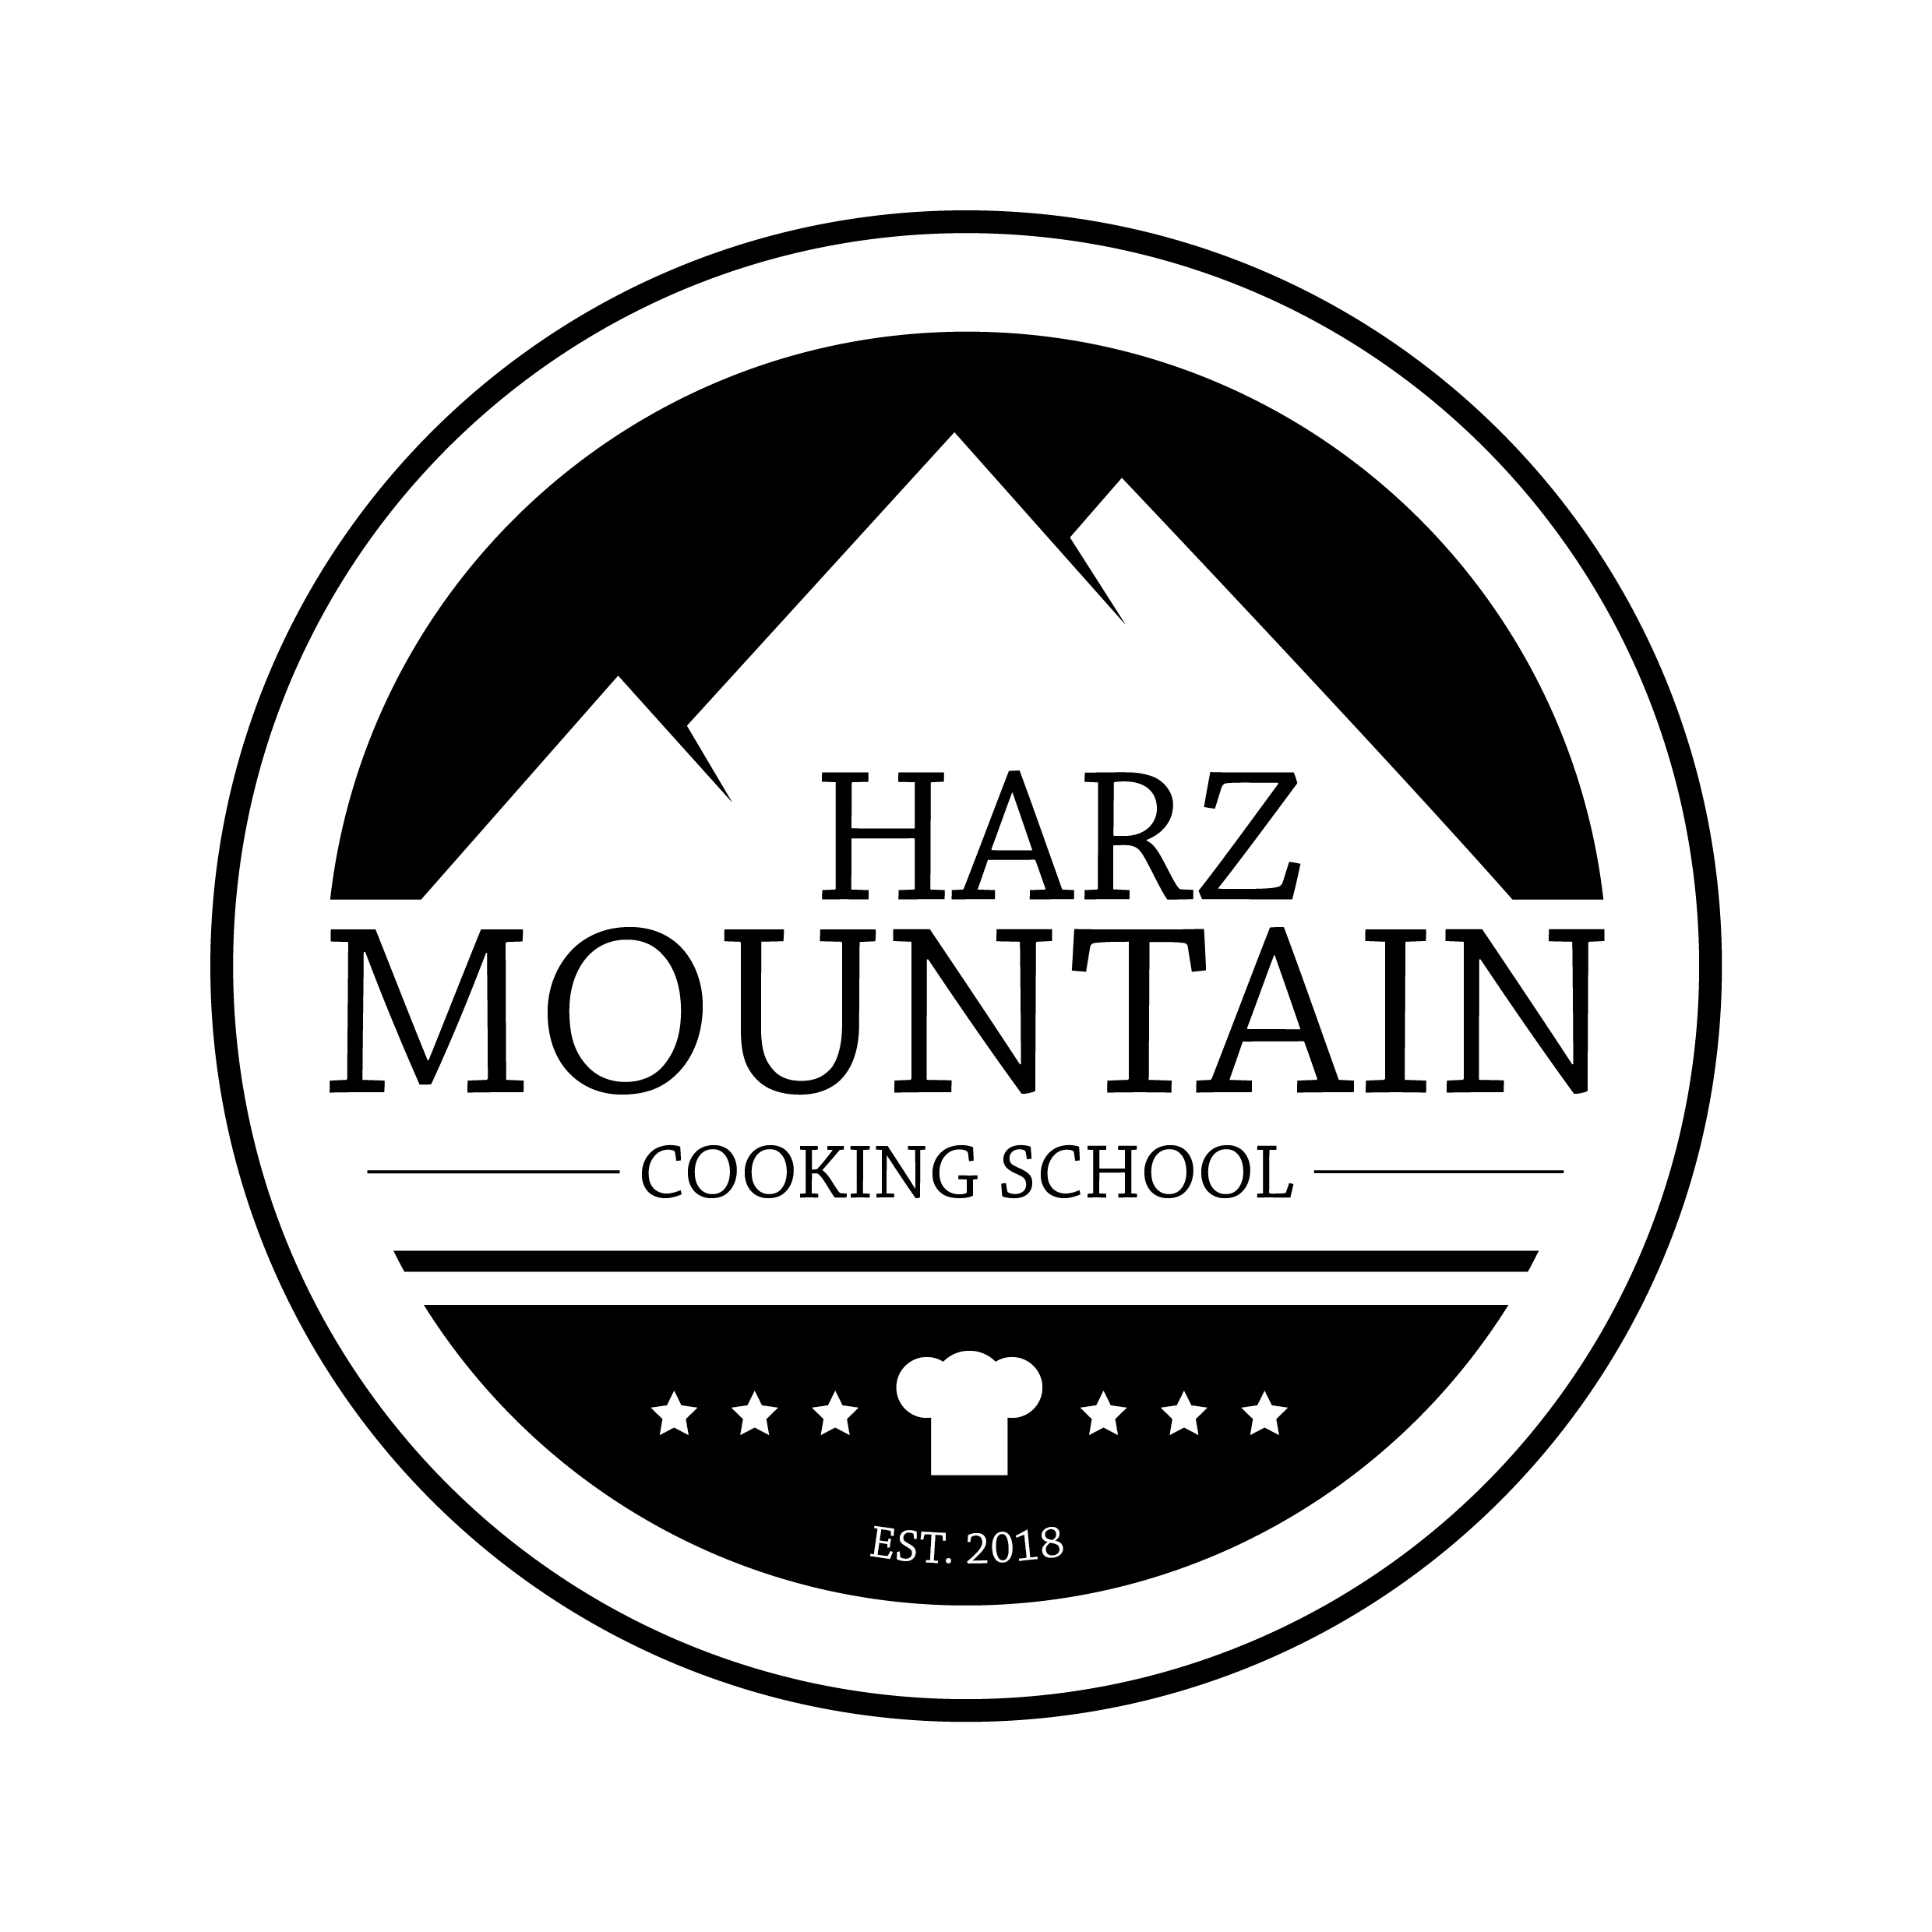 Harz-Mountain-Cooking-School